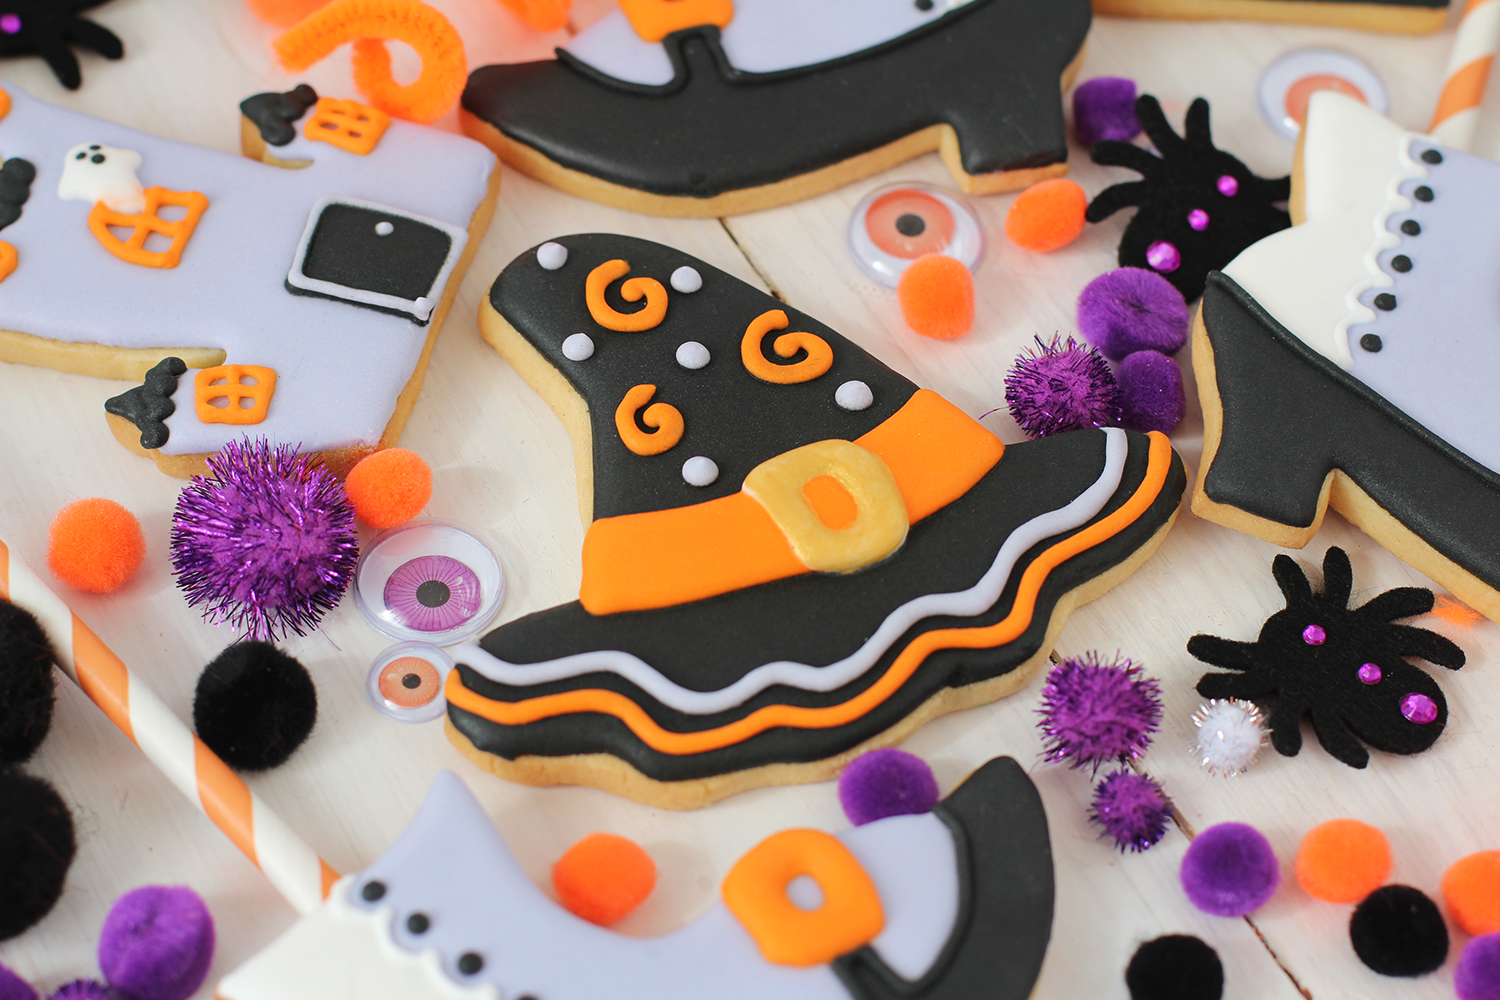 Galletas Decoradas Hallowen Galletas Decoradas De Halloween Postreadicción Cursos